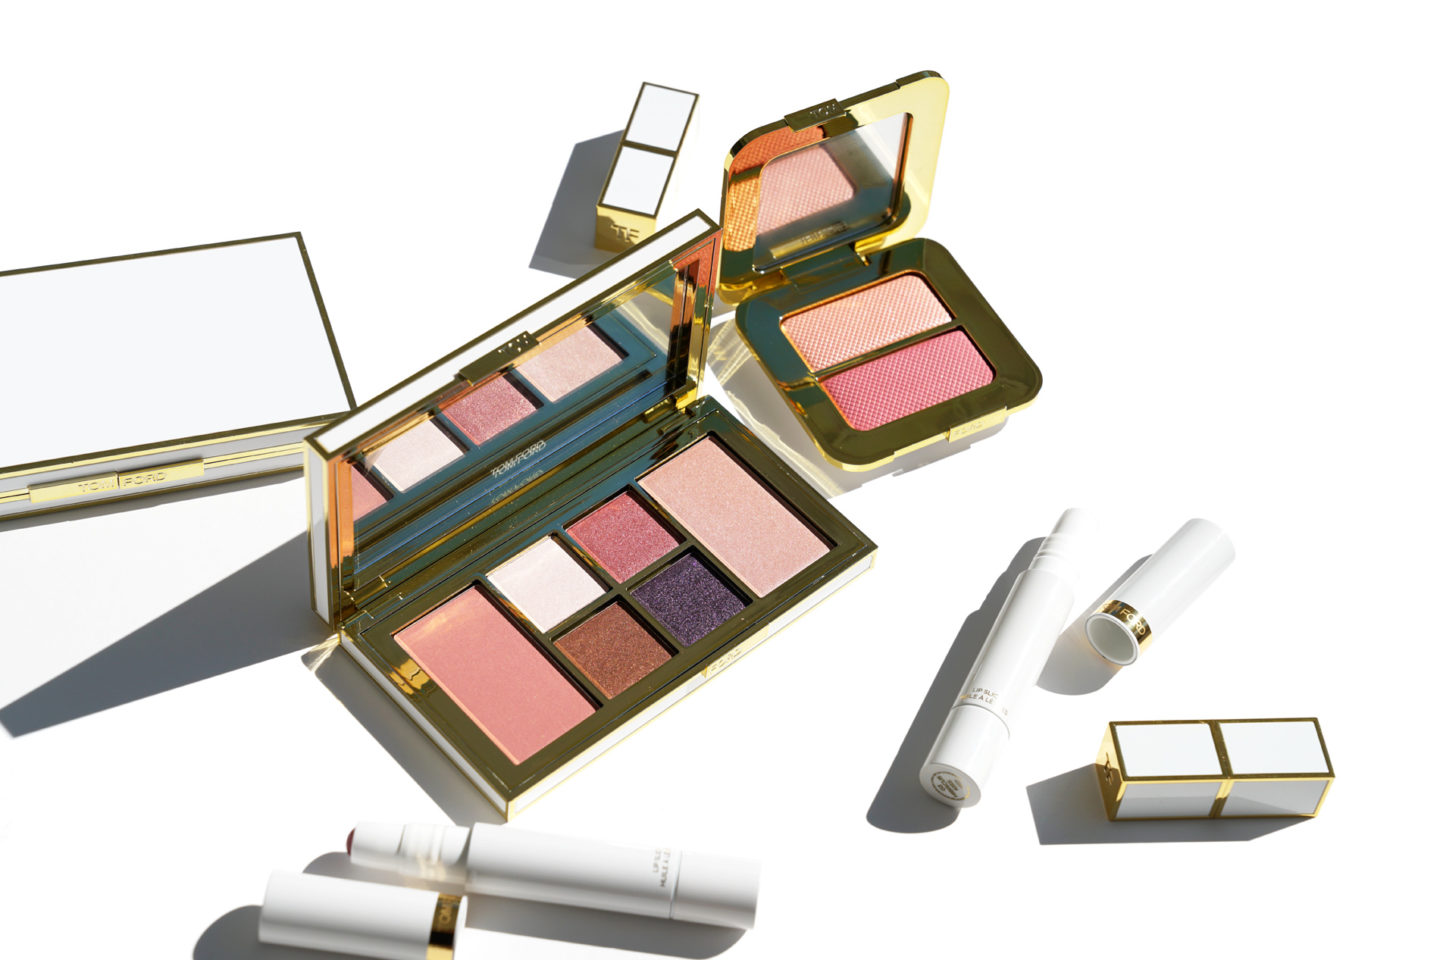 Tom Ford Beauty Soleil Winter 2017 Review and Swatches